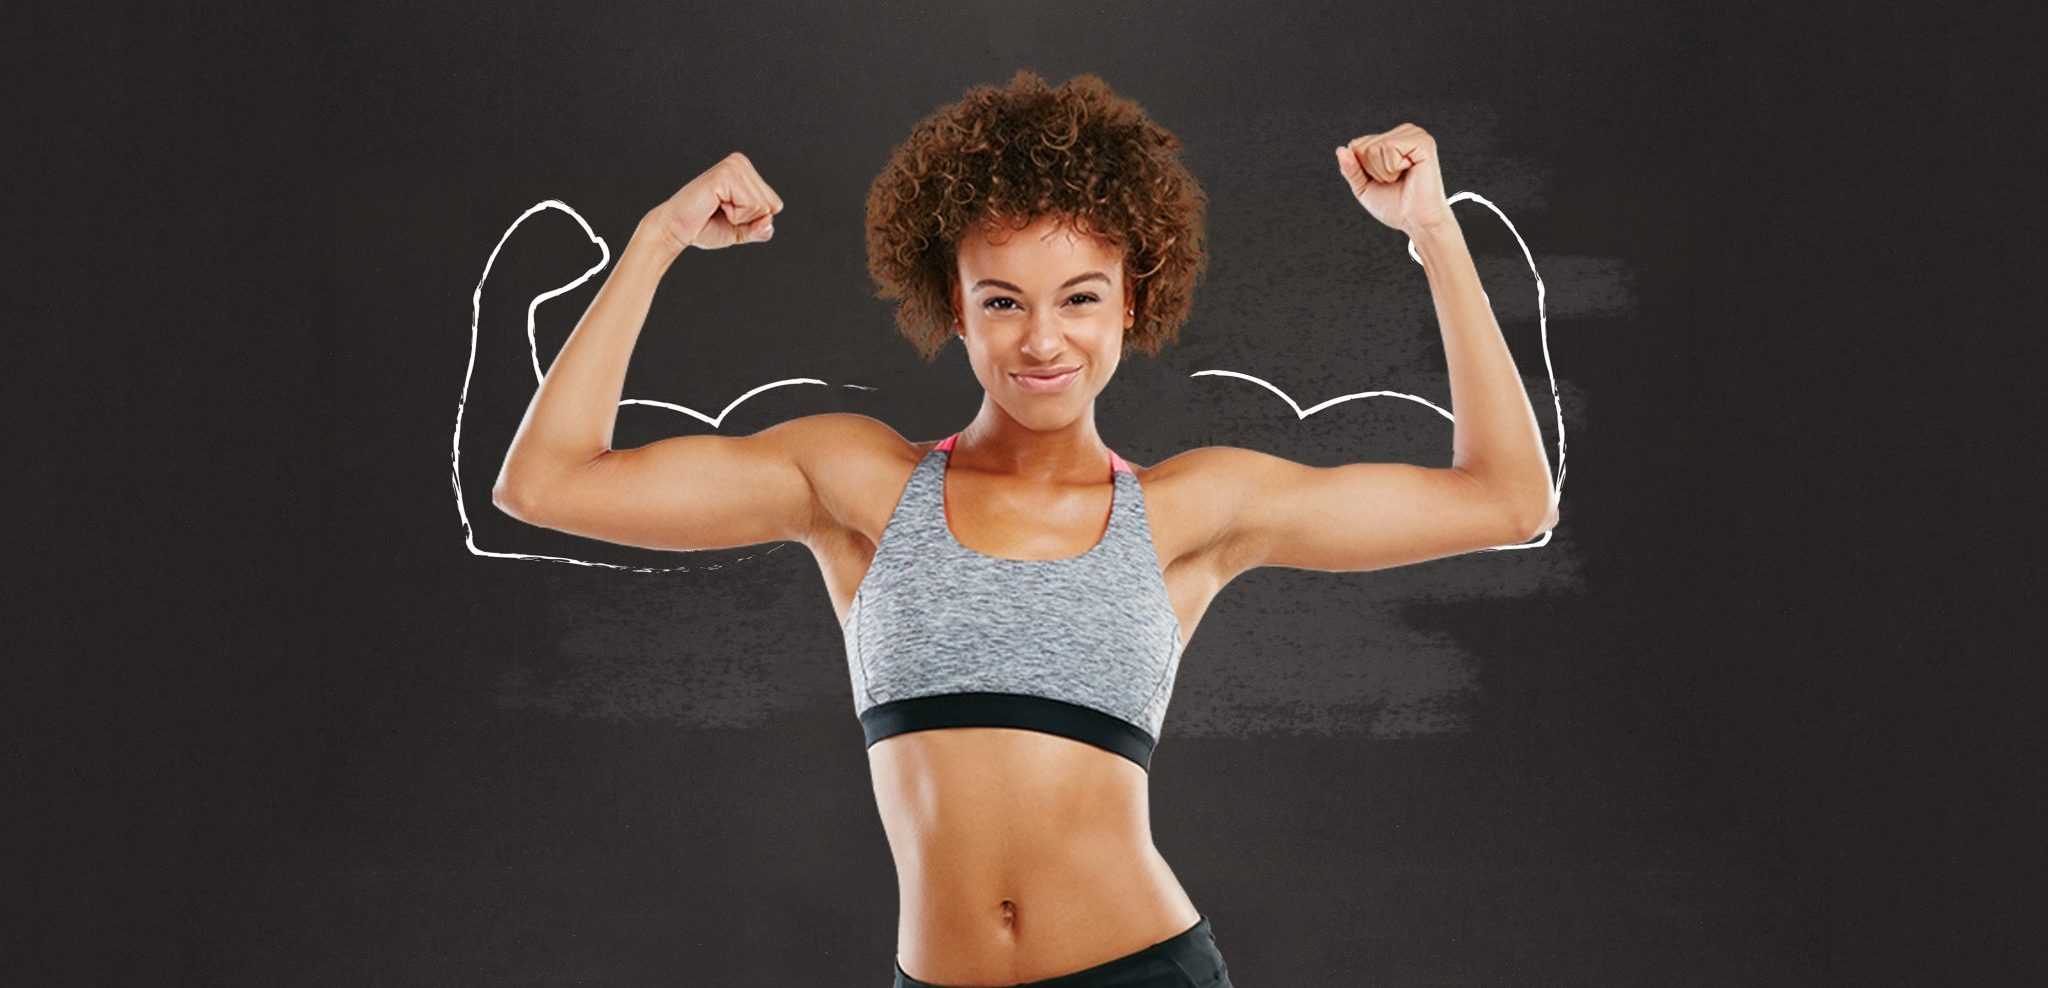 Look Good in Your LBD: Top 5 Exercises to Reduce Arm Fat